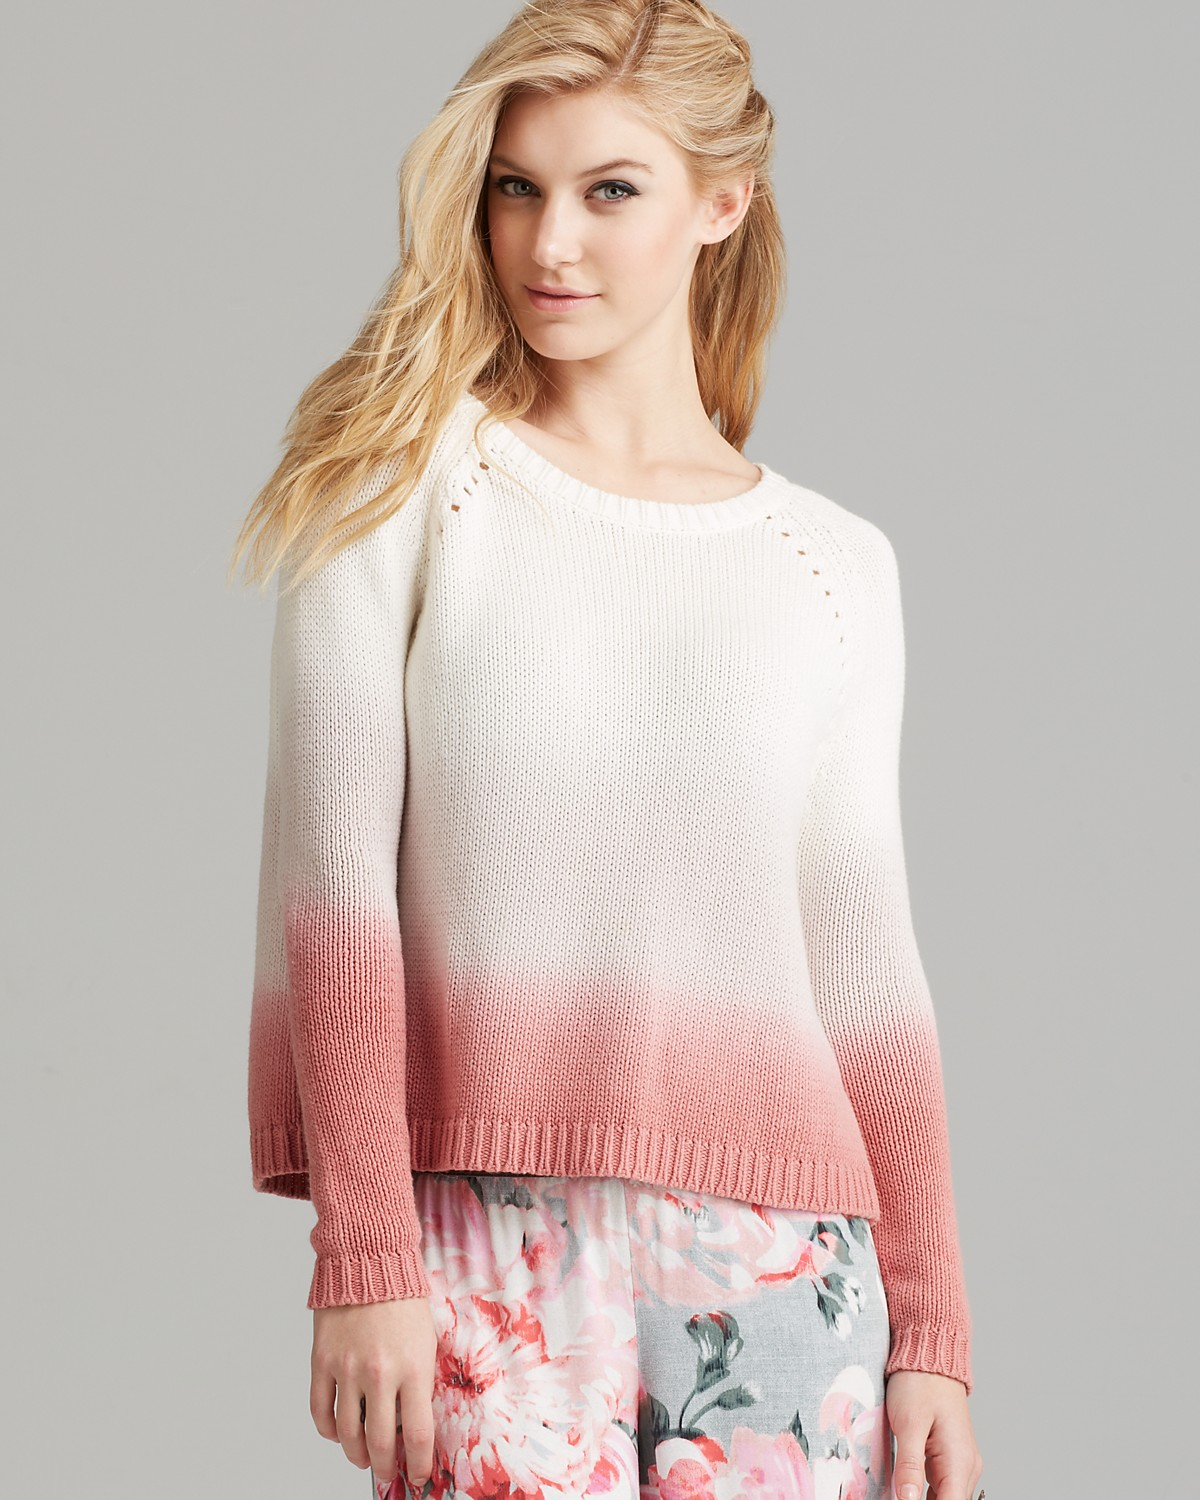 BB DAKOTA Sweater - Dip Dye | Bloomingdale's